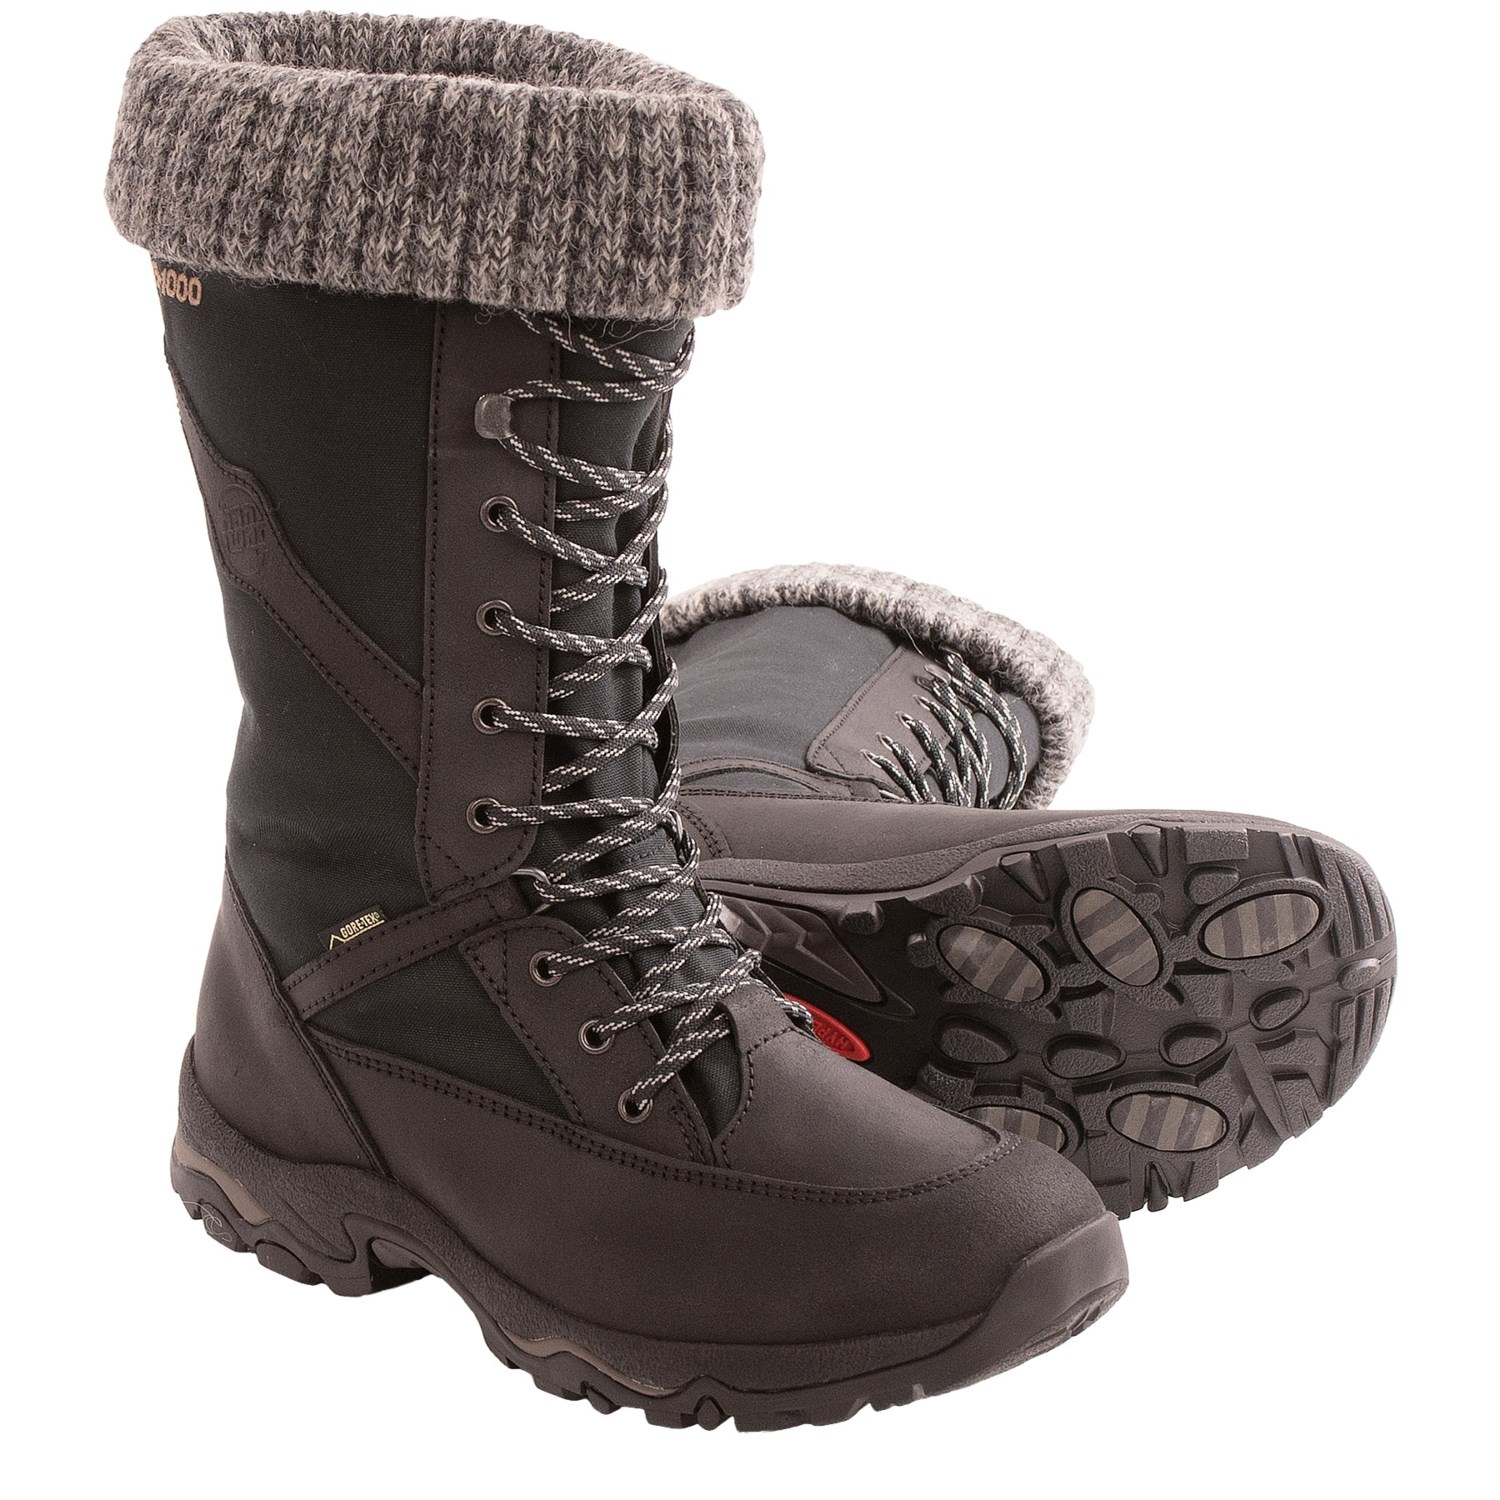 New  Vasque Eriksson GoreTex Hiking Boots  Waterproof For Women